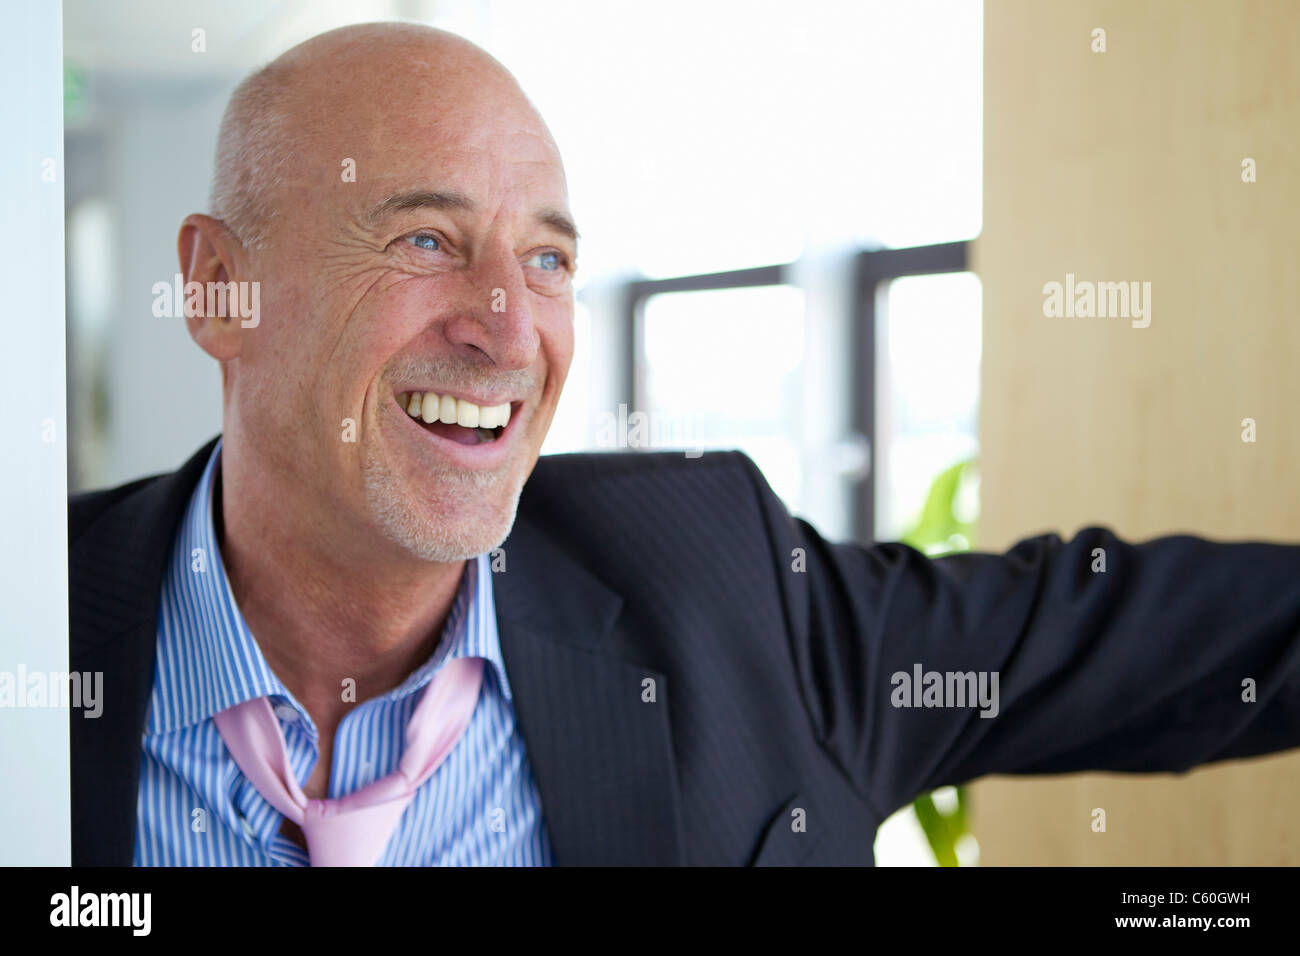 Laughing businessman in loose tie - Stock Image